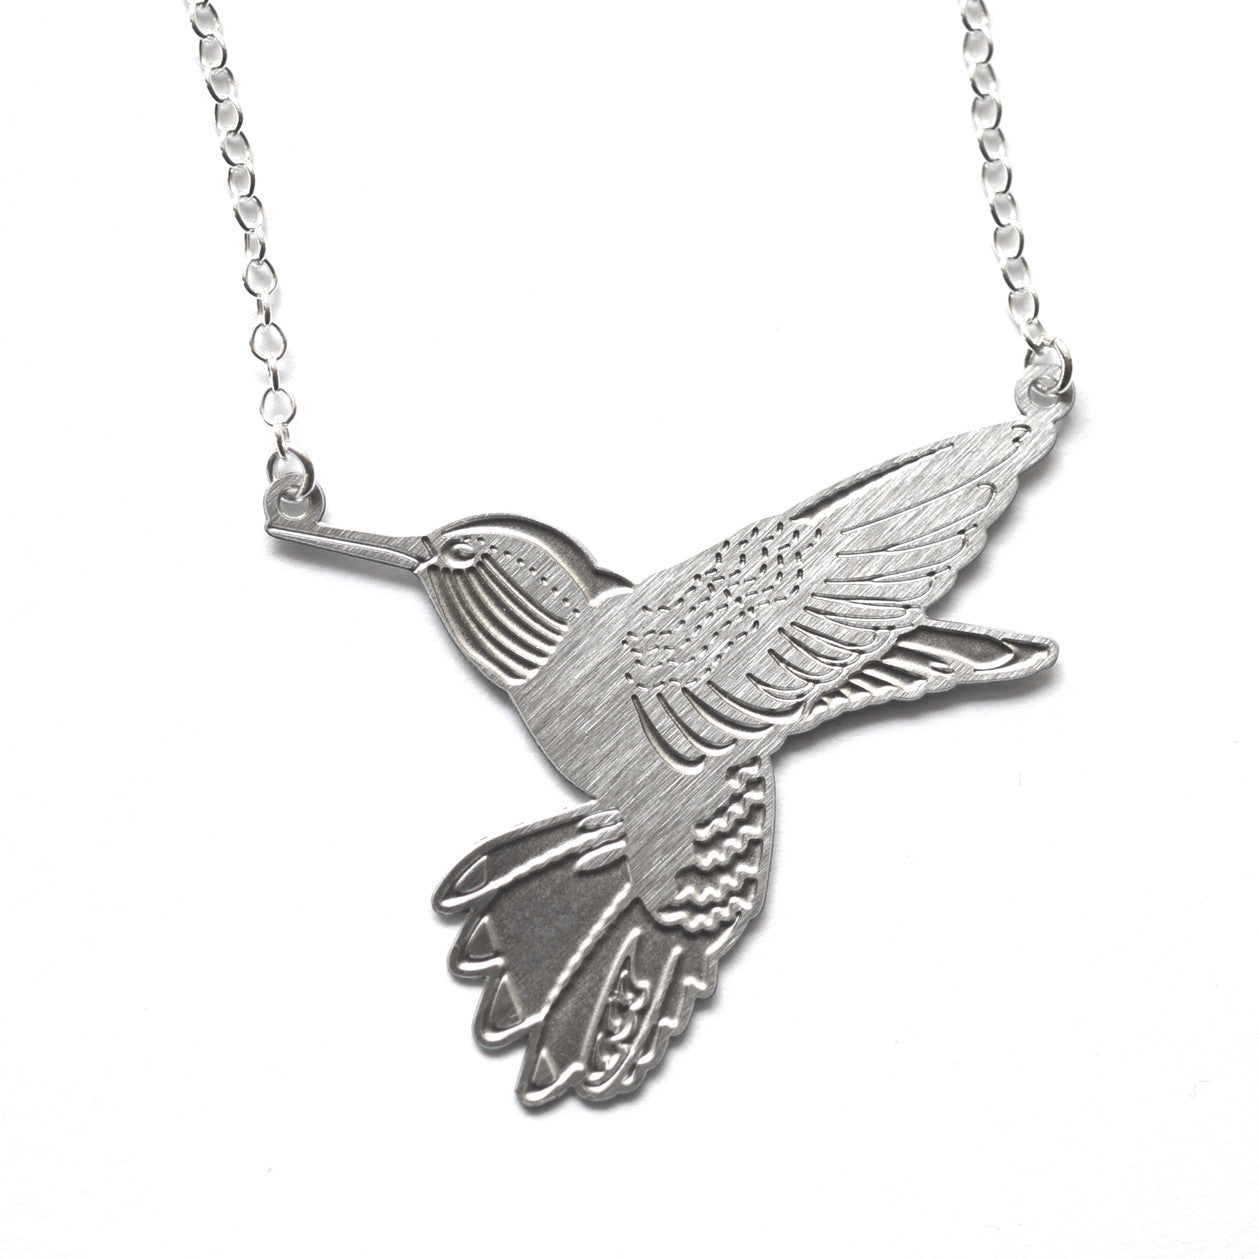 Nectar Hummingbird Necklace